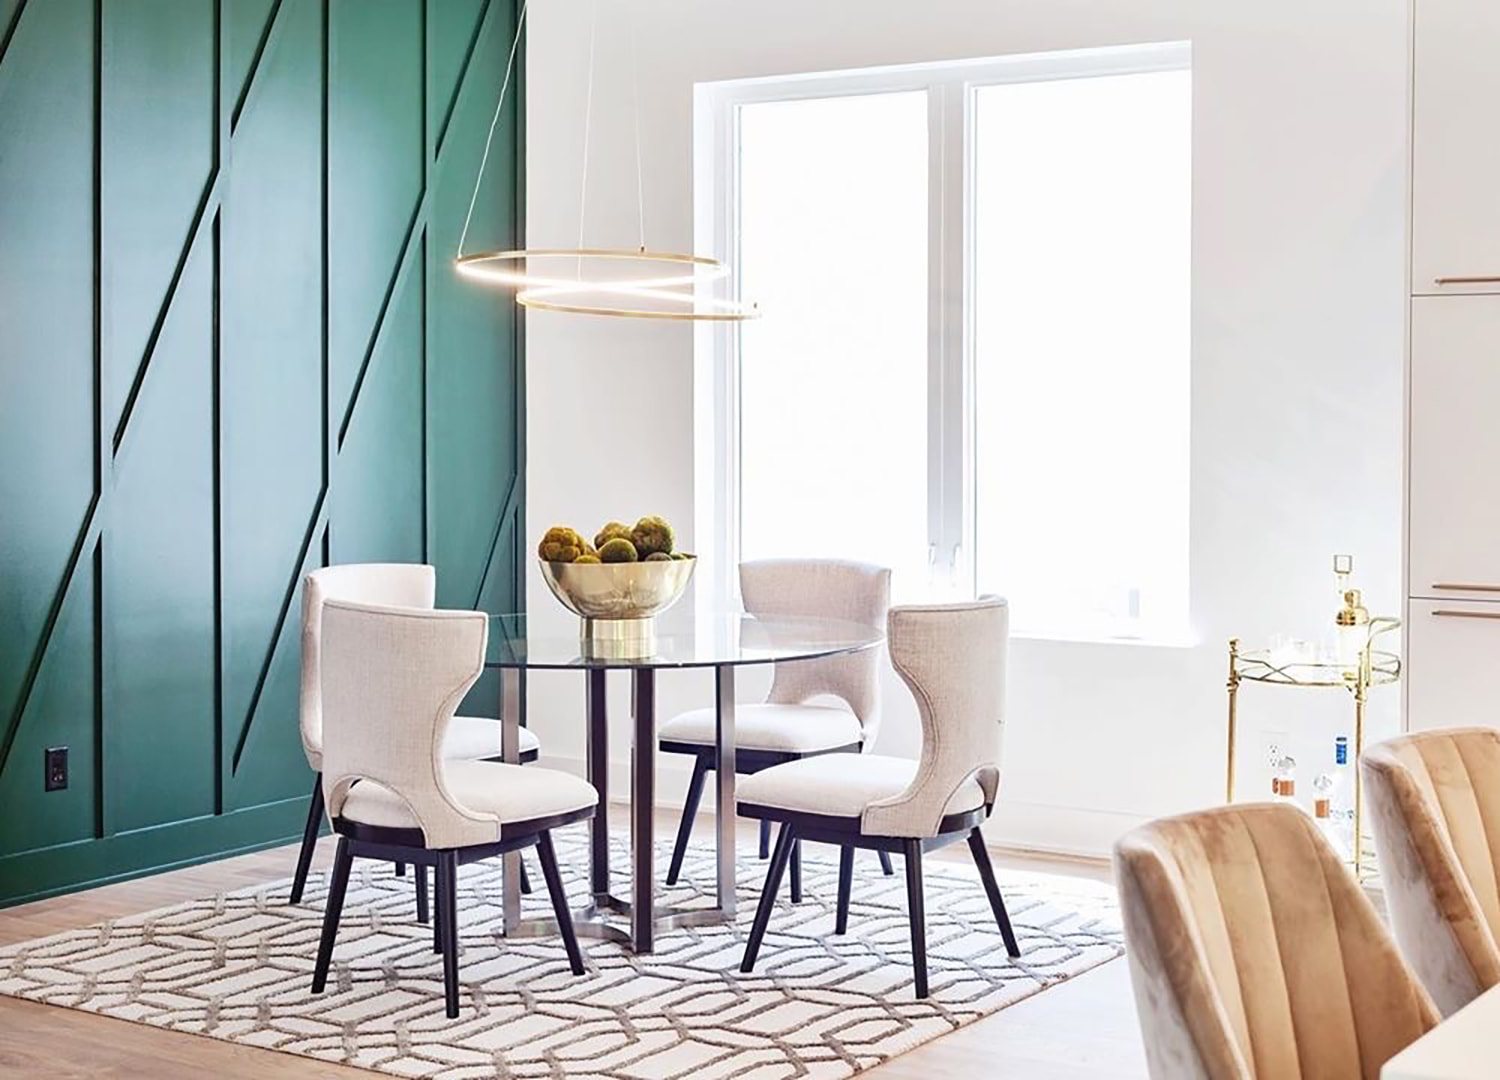 Contemporary dining room with bright colors and white casement windows behind the table.